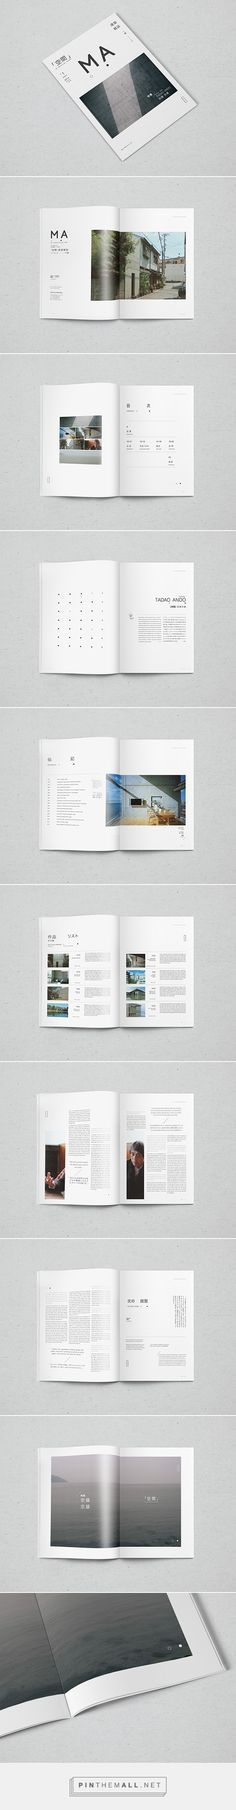 """MA [空間] - Architectural Magazine on Behance - created via <a href=""""http://pinthemall.net"""" rel=""""nofollow"""" target=""""_blank"""">pinthemall.net</a>"""